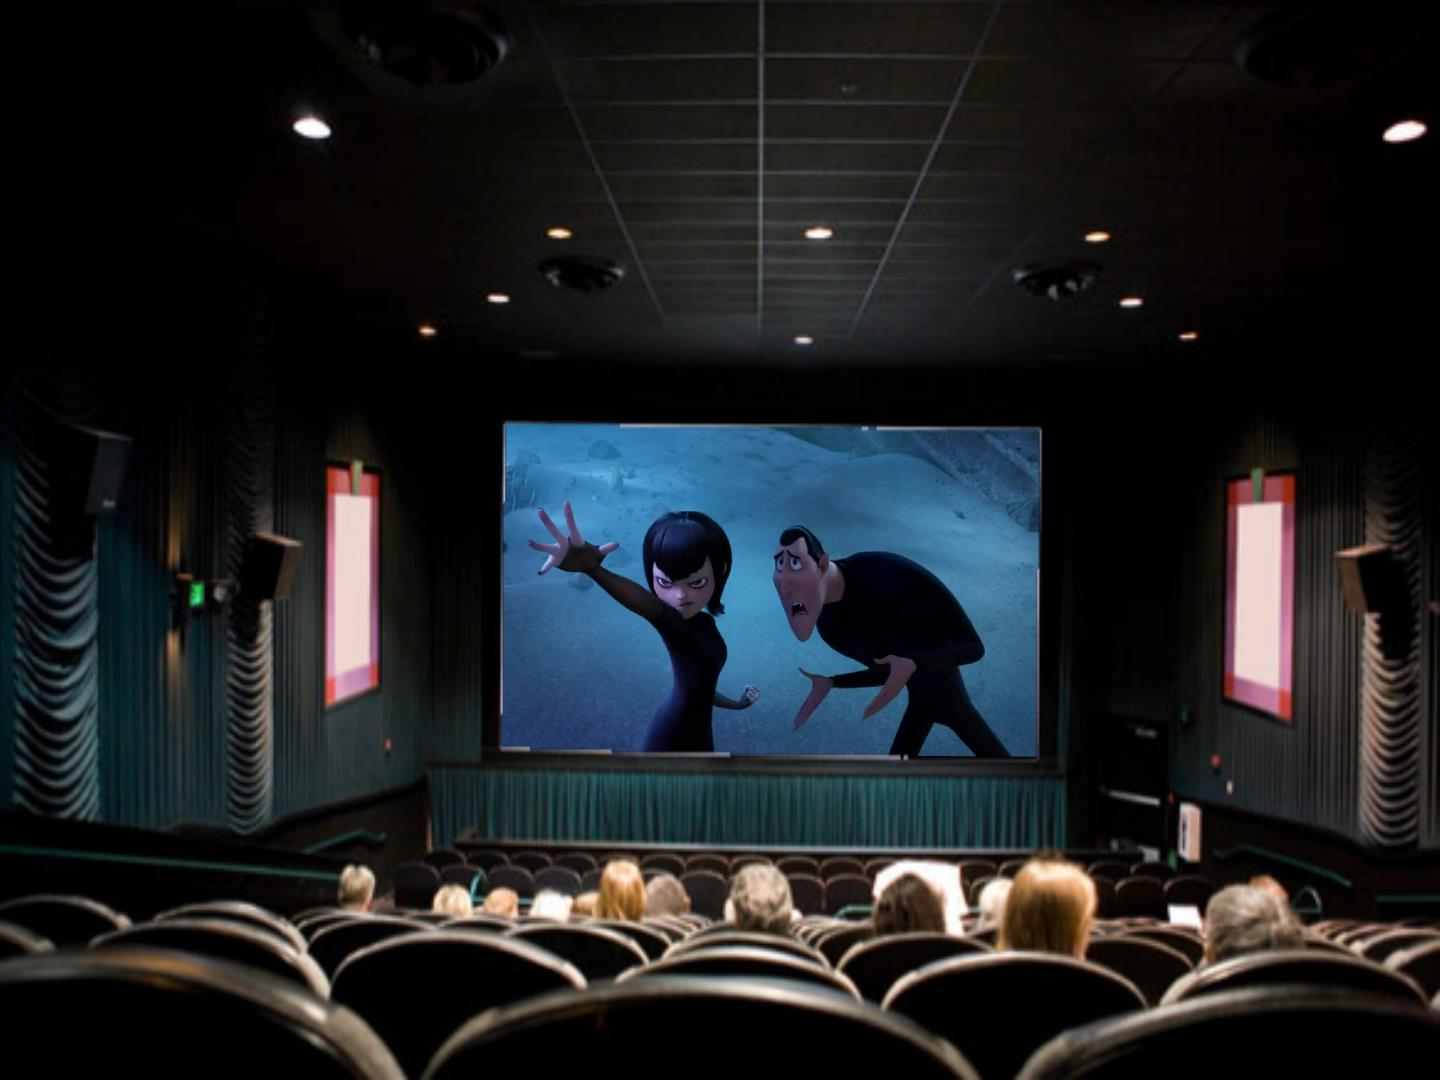 They Watching Hotel Transylvania 3 In The Movie Theater Hotel Transylvania Wallpaper 42949226 Fanpop